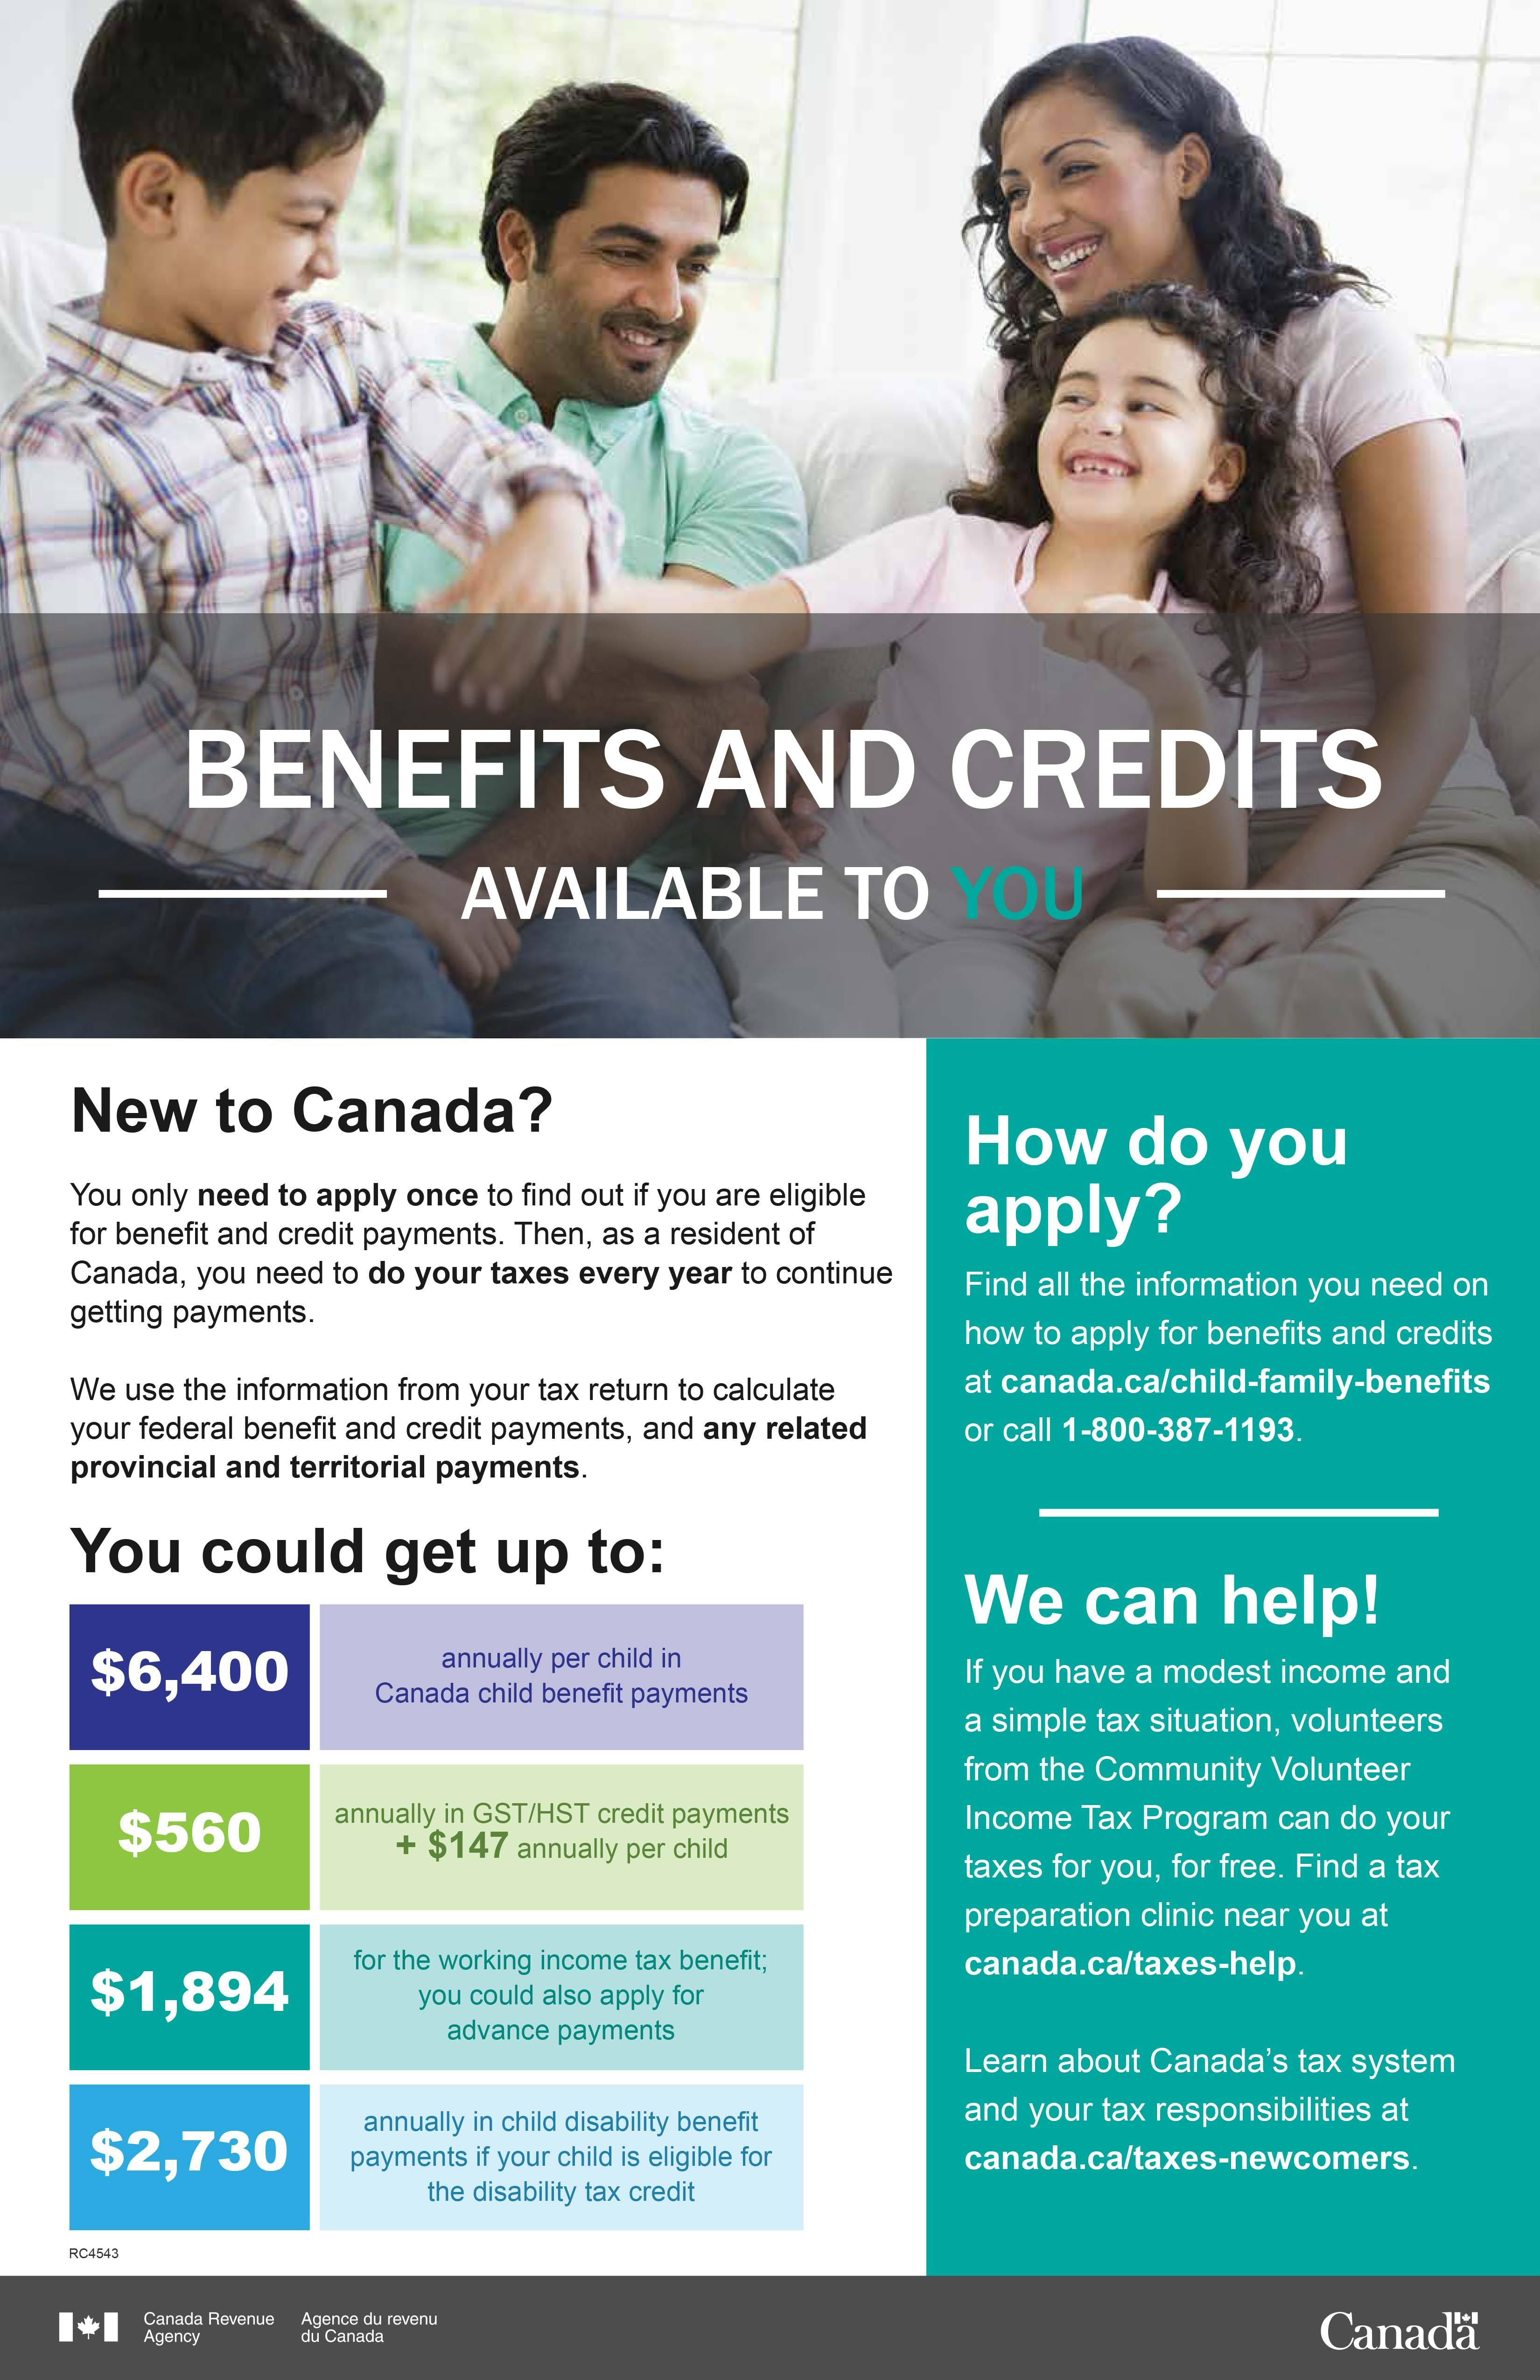 poster on benefits and credits